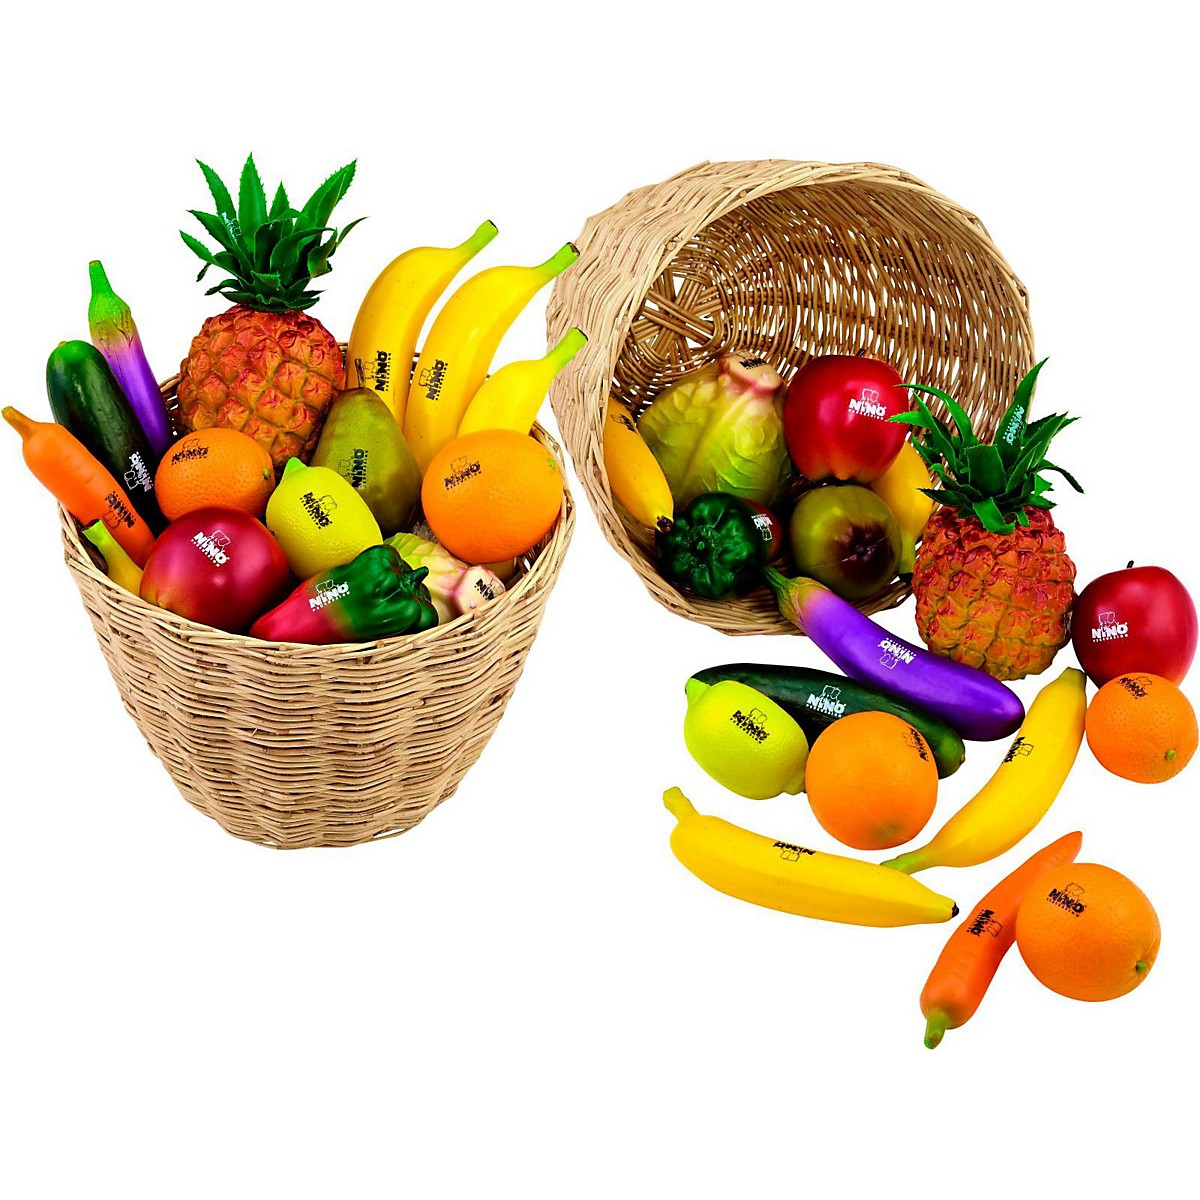 Nino 36-Piece Fruit and Vegetable Shakers in Basket